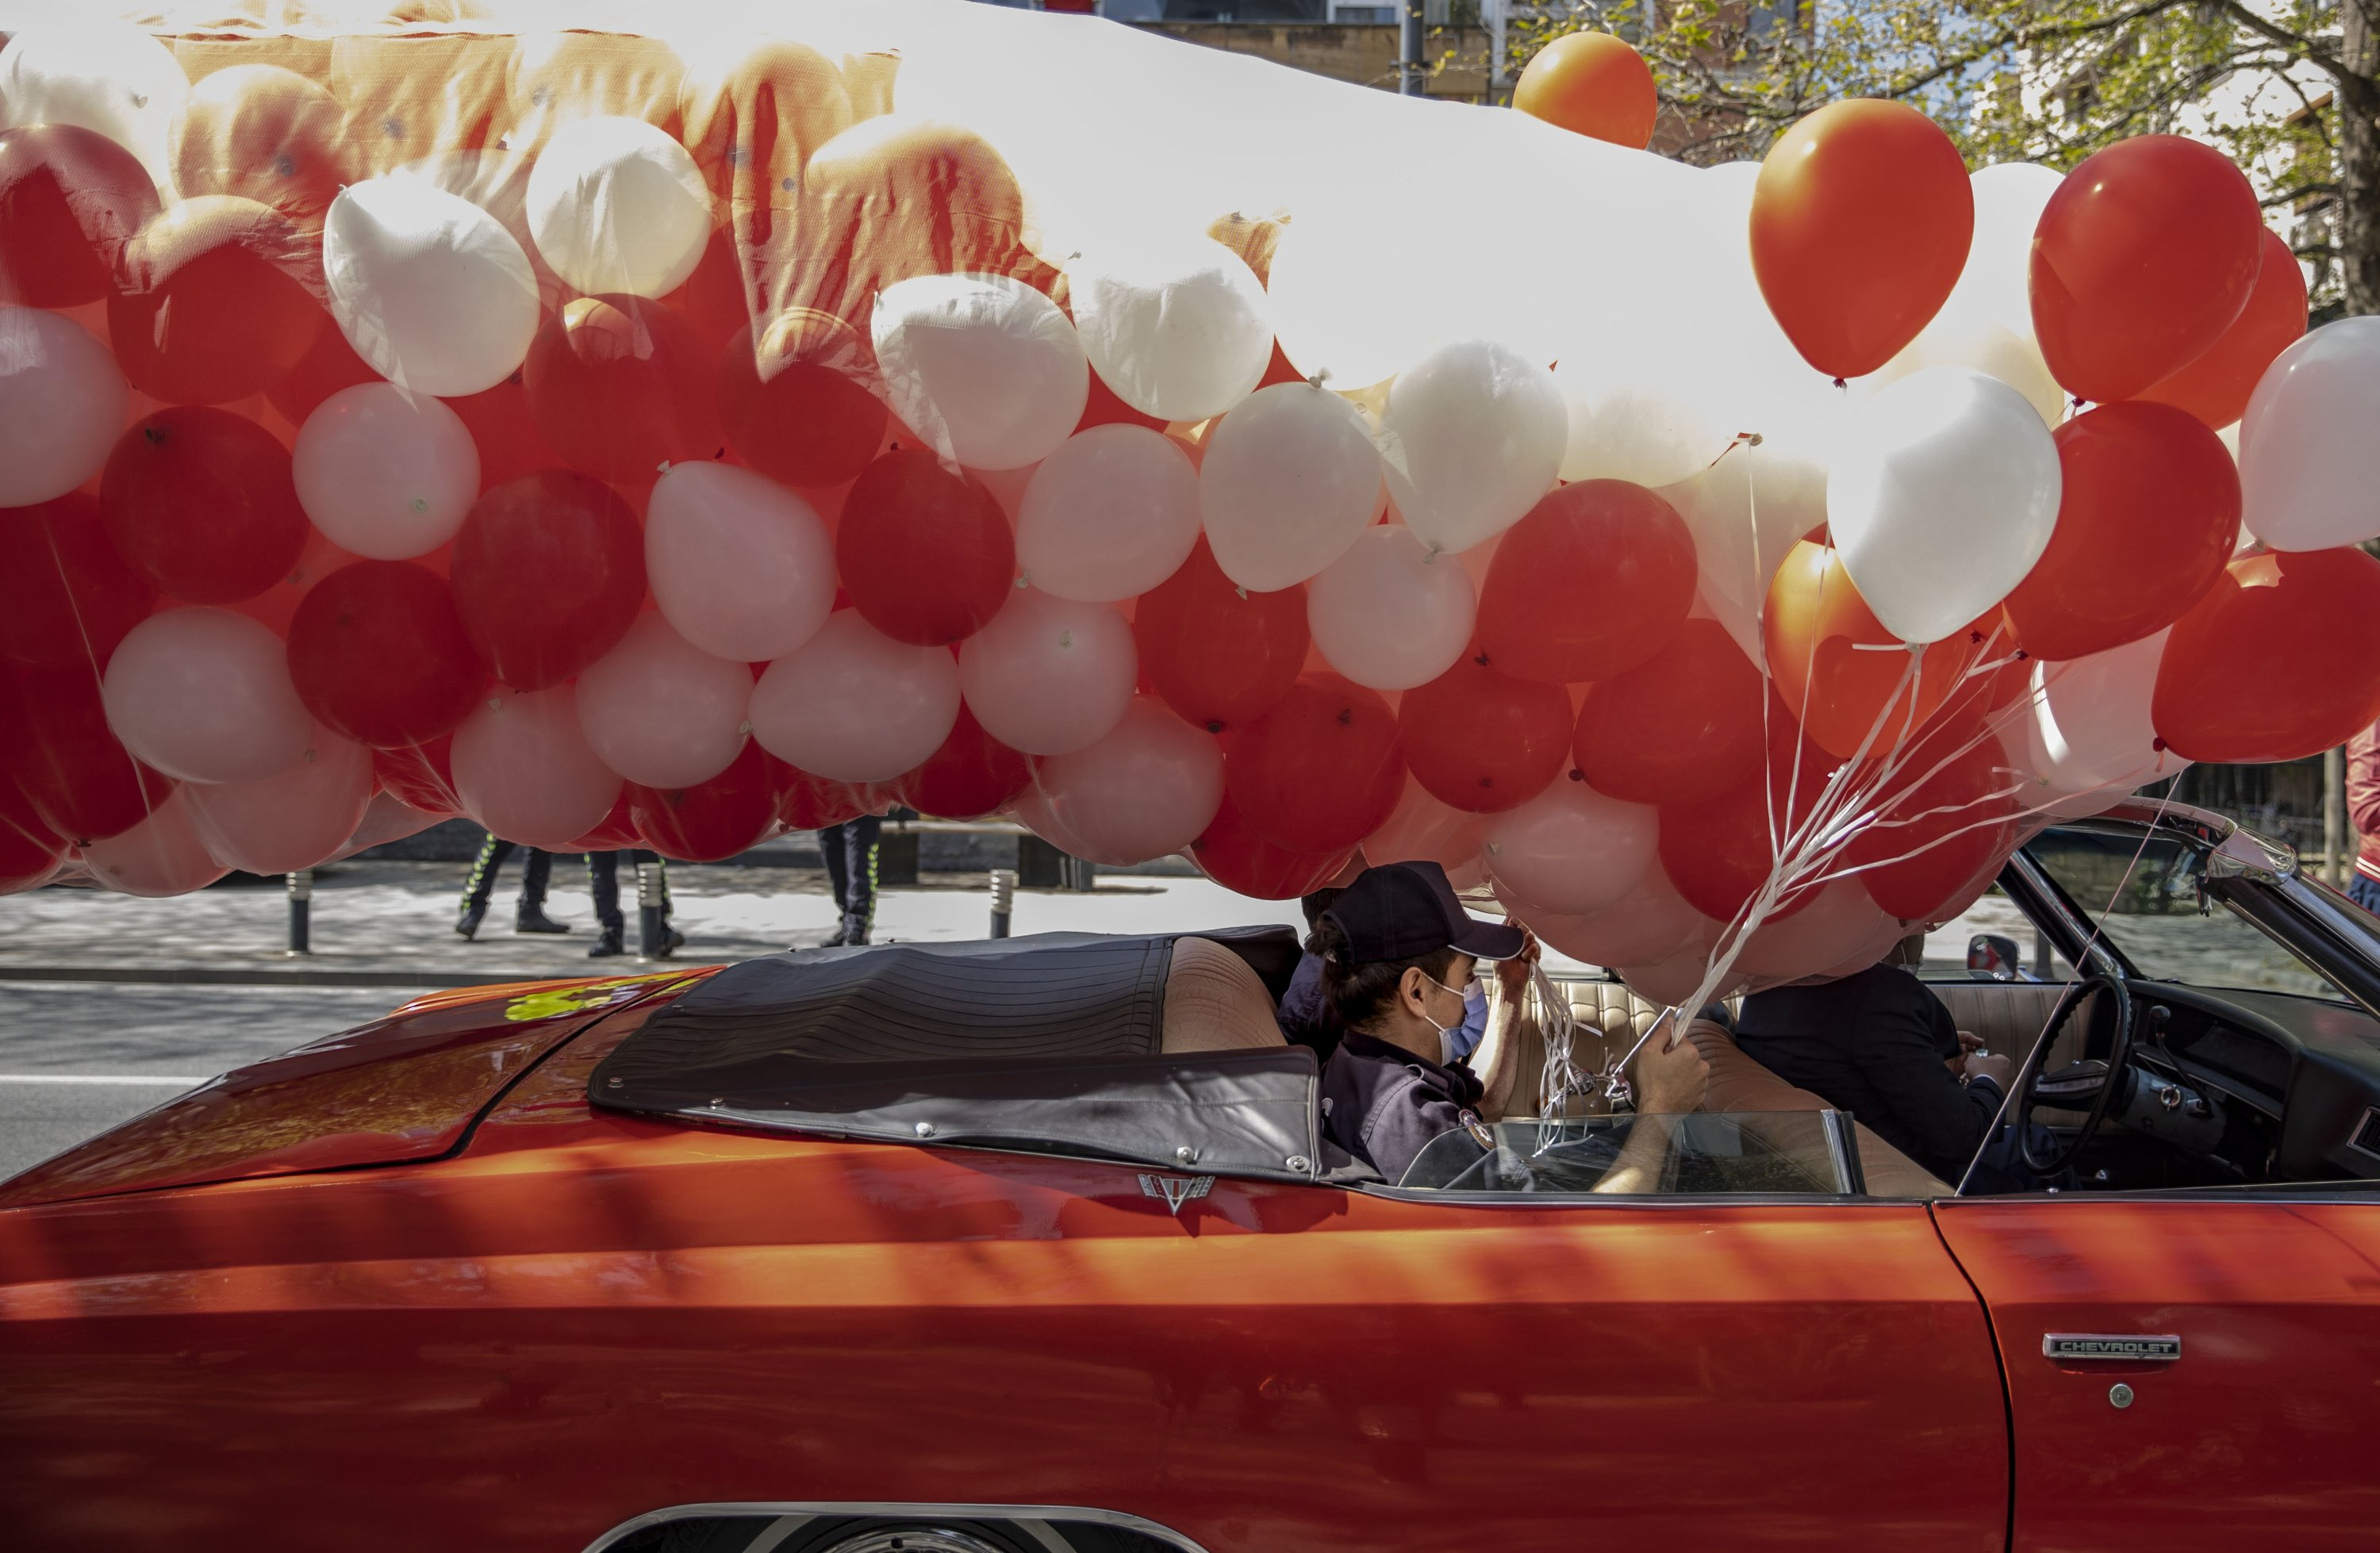 Members of the Istanbul police department release red and white balloons from a classic convertibleas part of the National Sovereignty and Children's Day celebrations, in Istanbul, Turkey, April 23, 2021. (AA Photo)